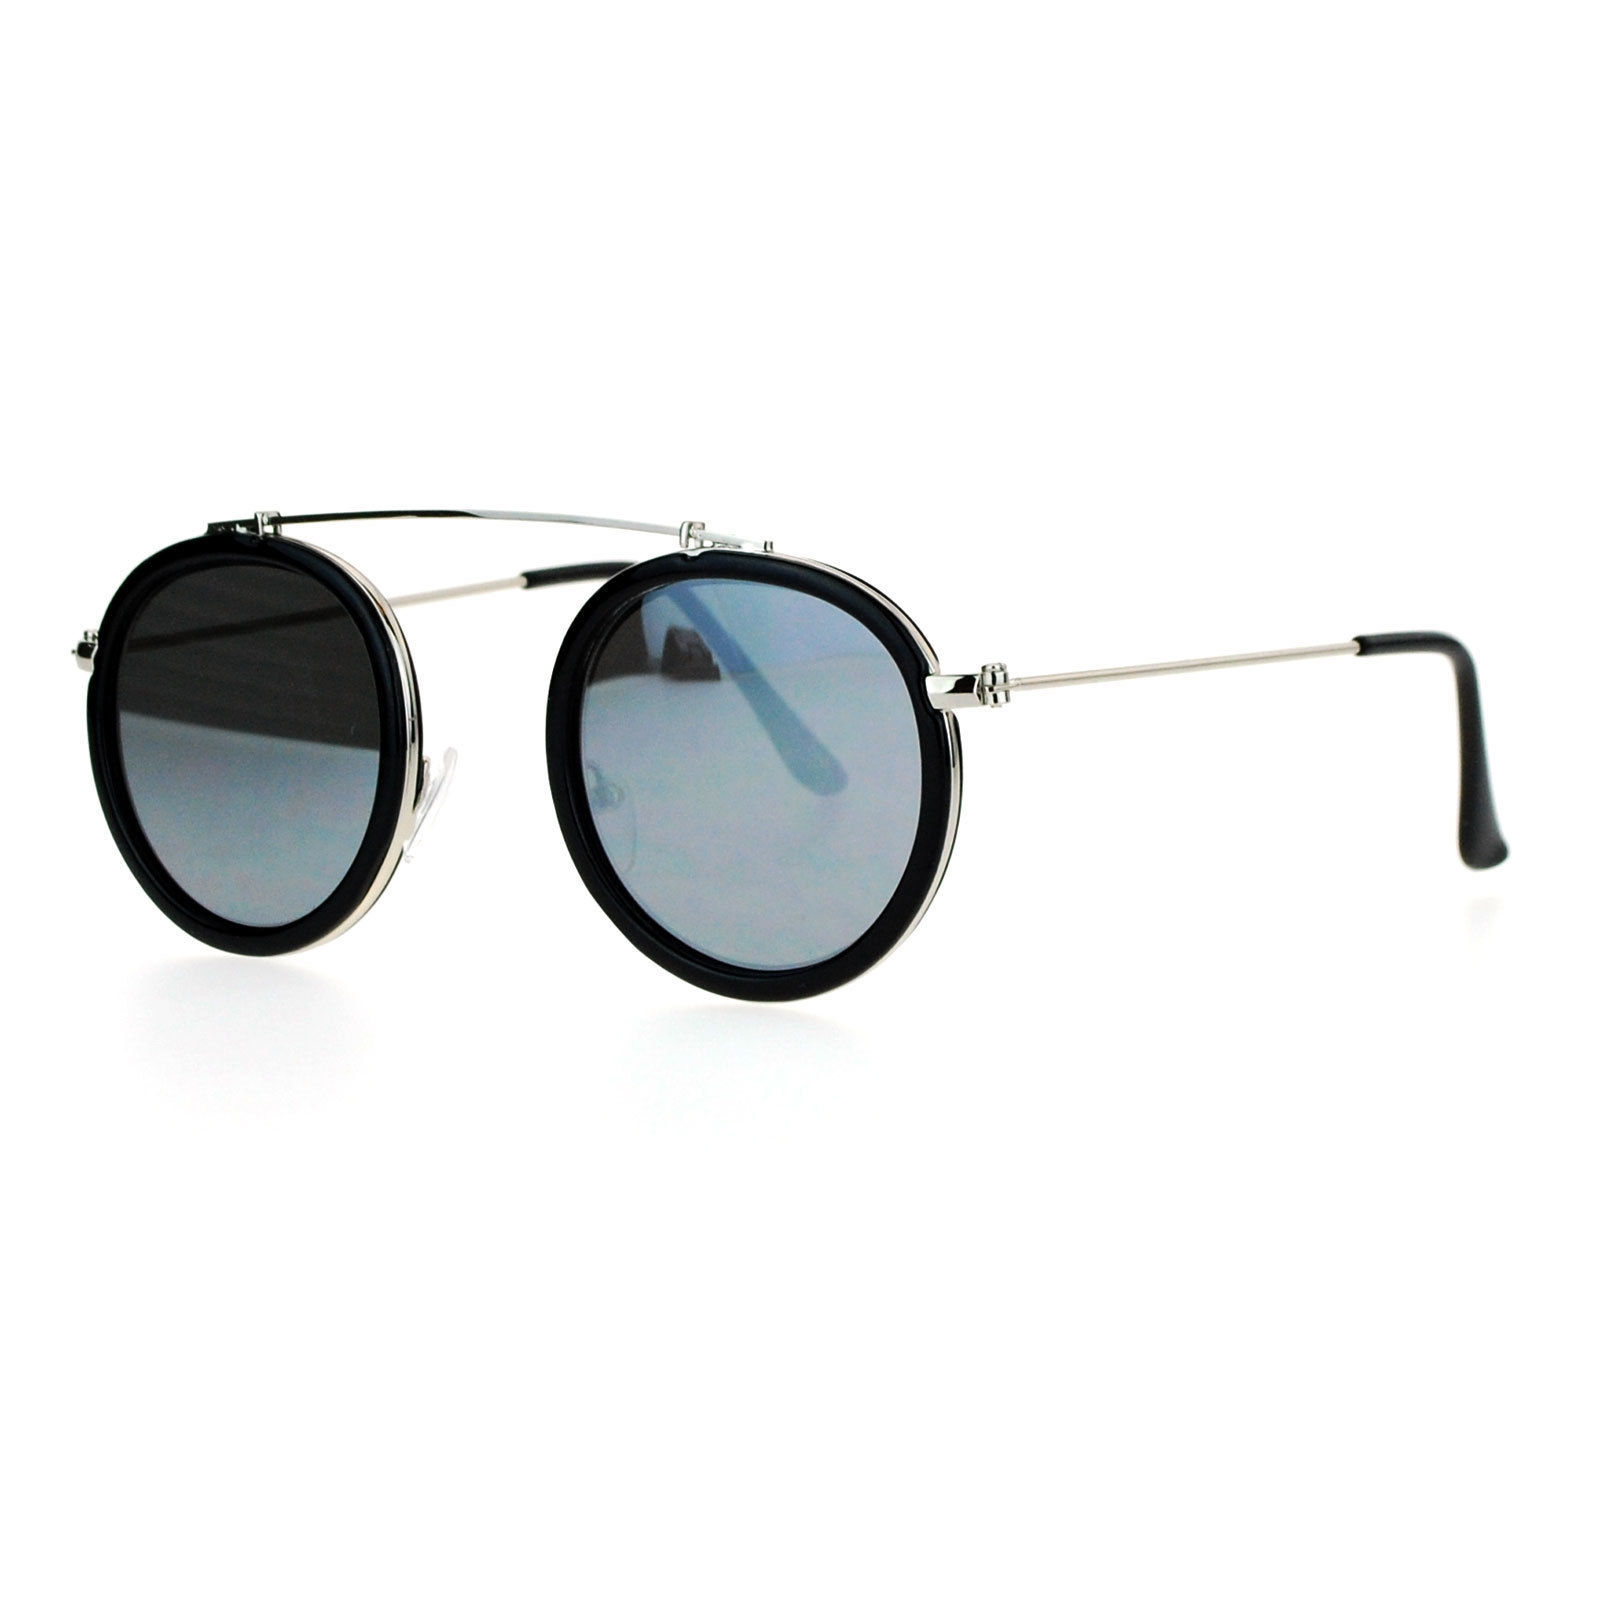 Vintage Retro Fashion Sunglasses Round Metal Top Bridge Flat Narrow Frame Lens